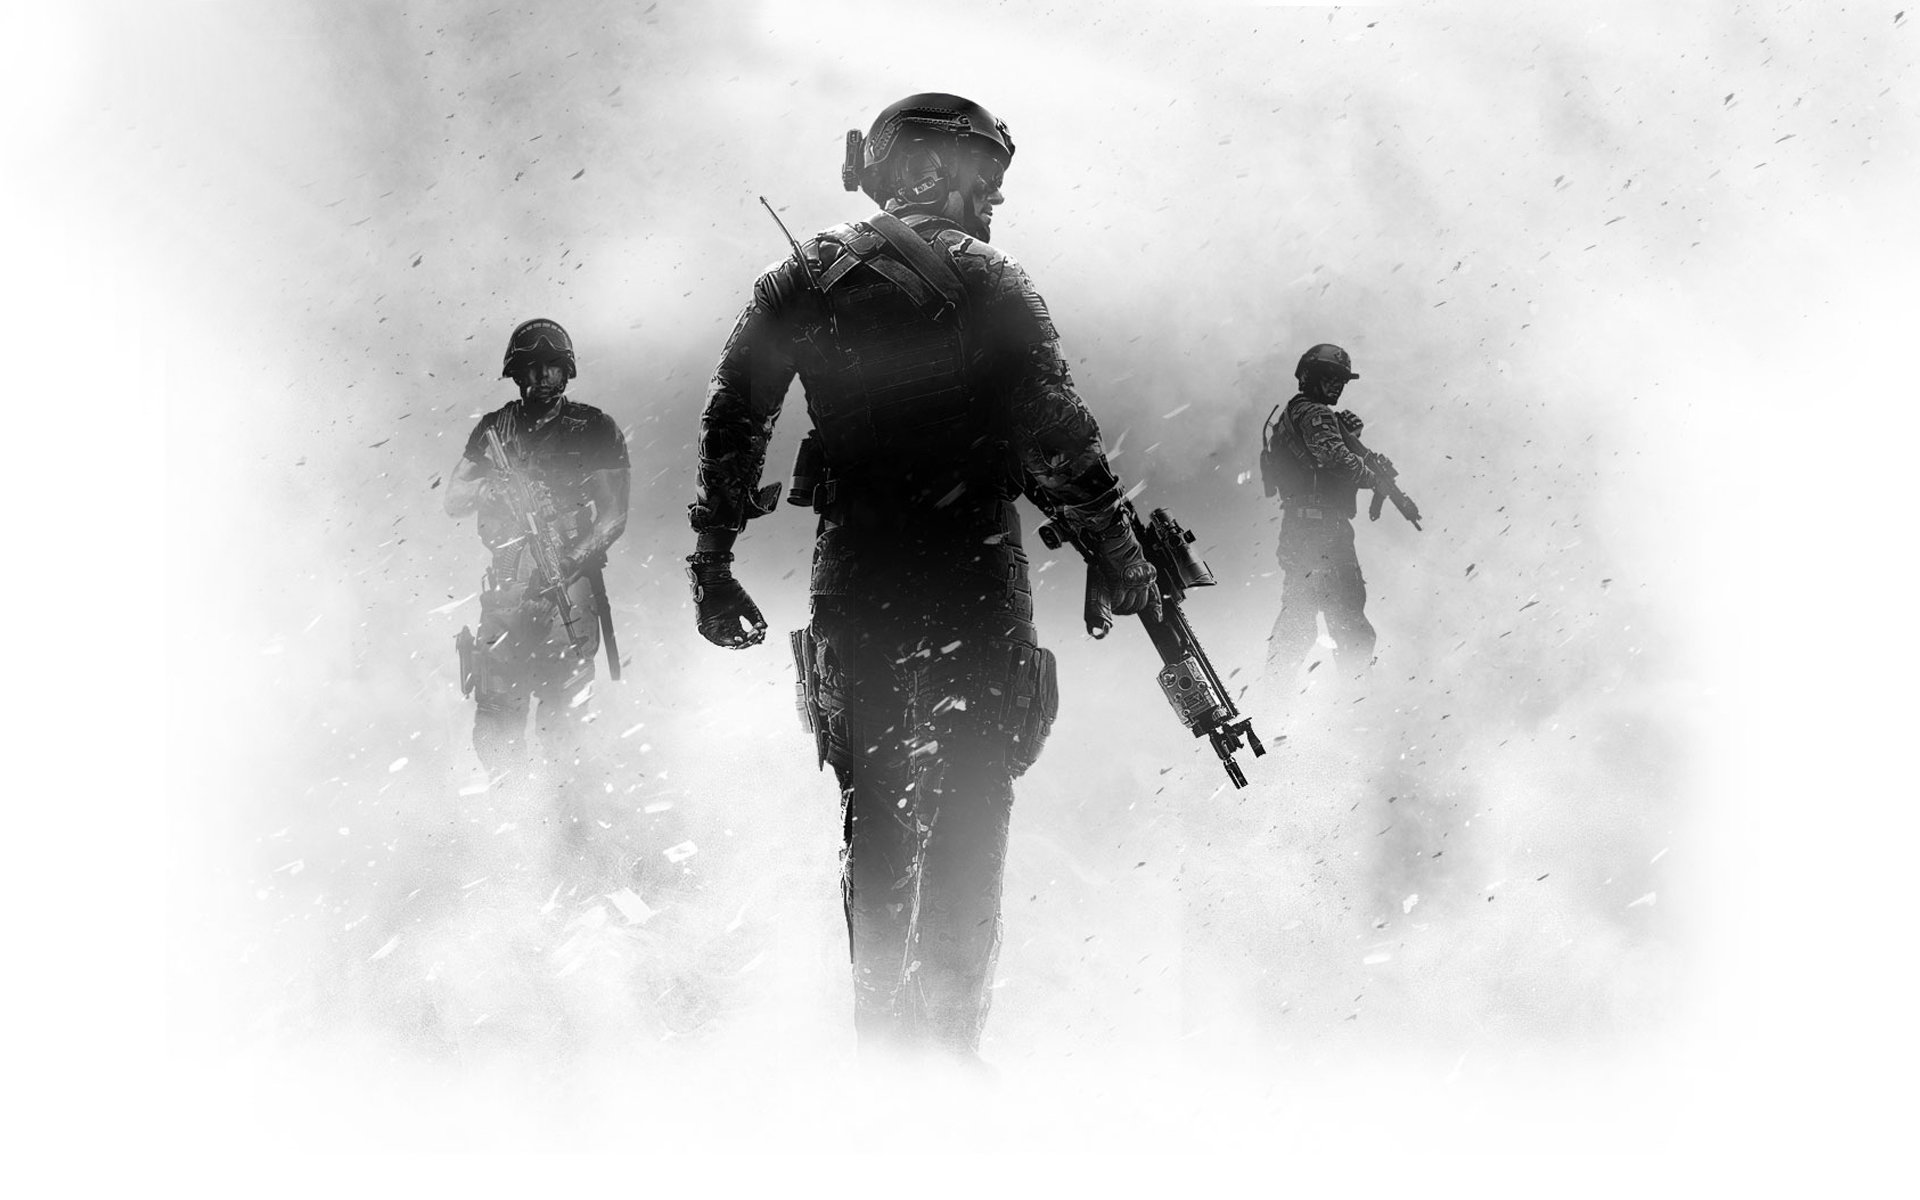 Call of duty modern warfare 3 mw3 wallpapers hd for - Mw3 wallpaper ...